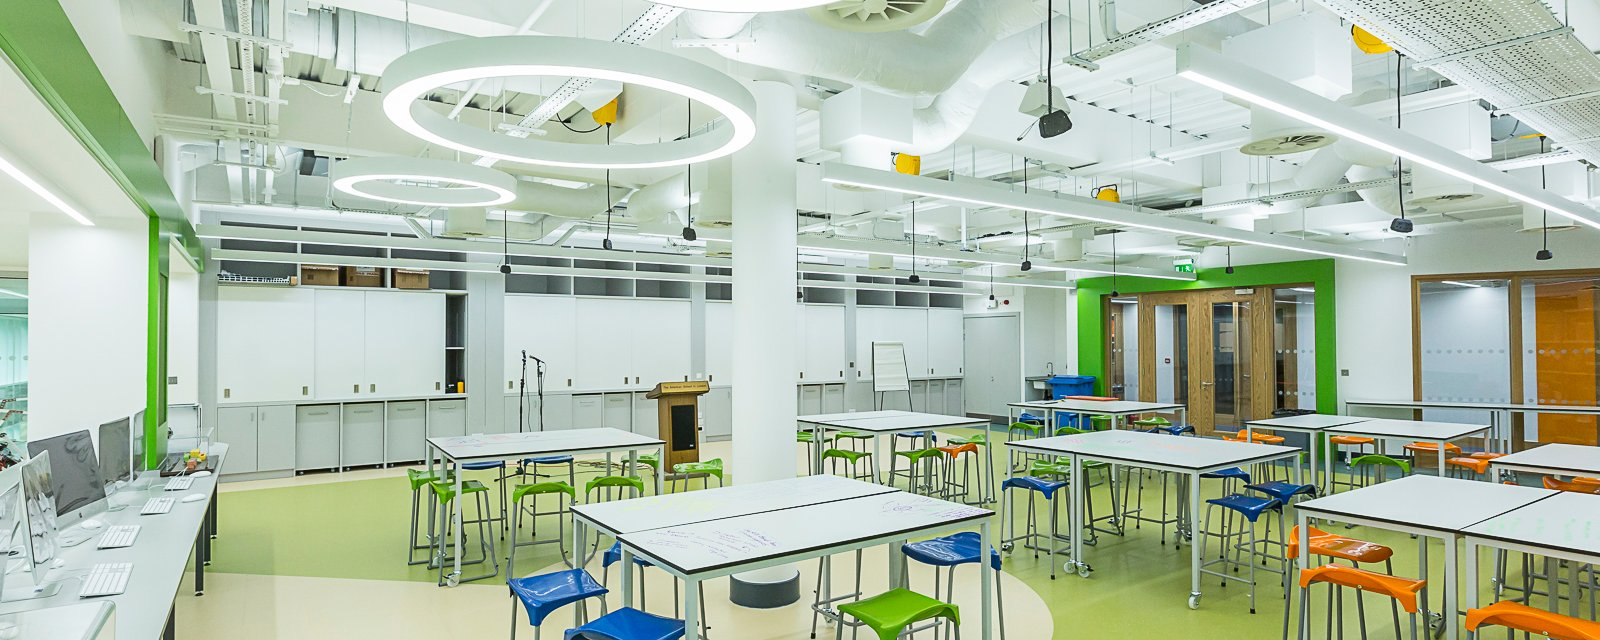 LED ring pendant lighting school.jpg